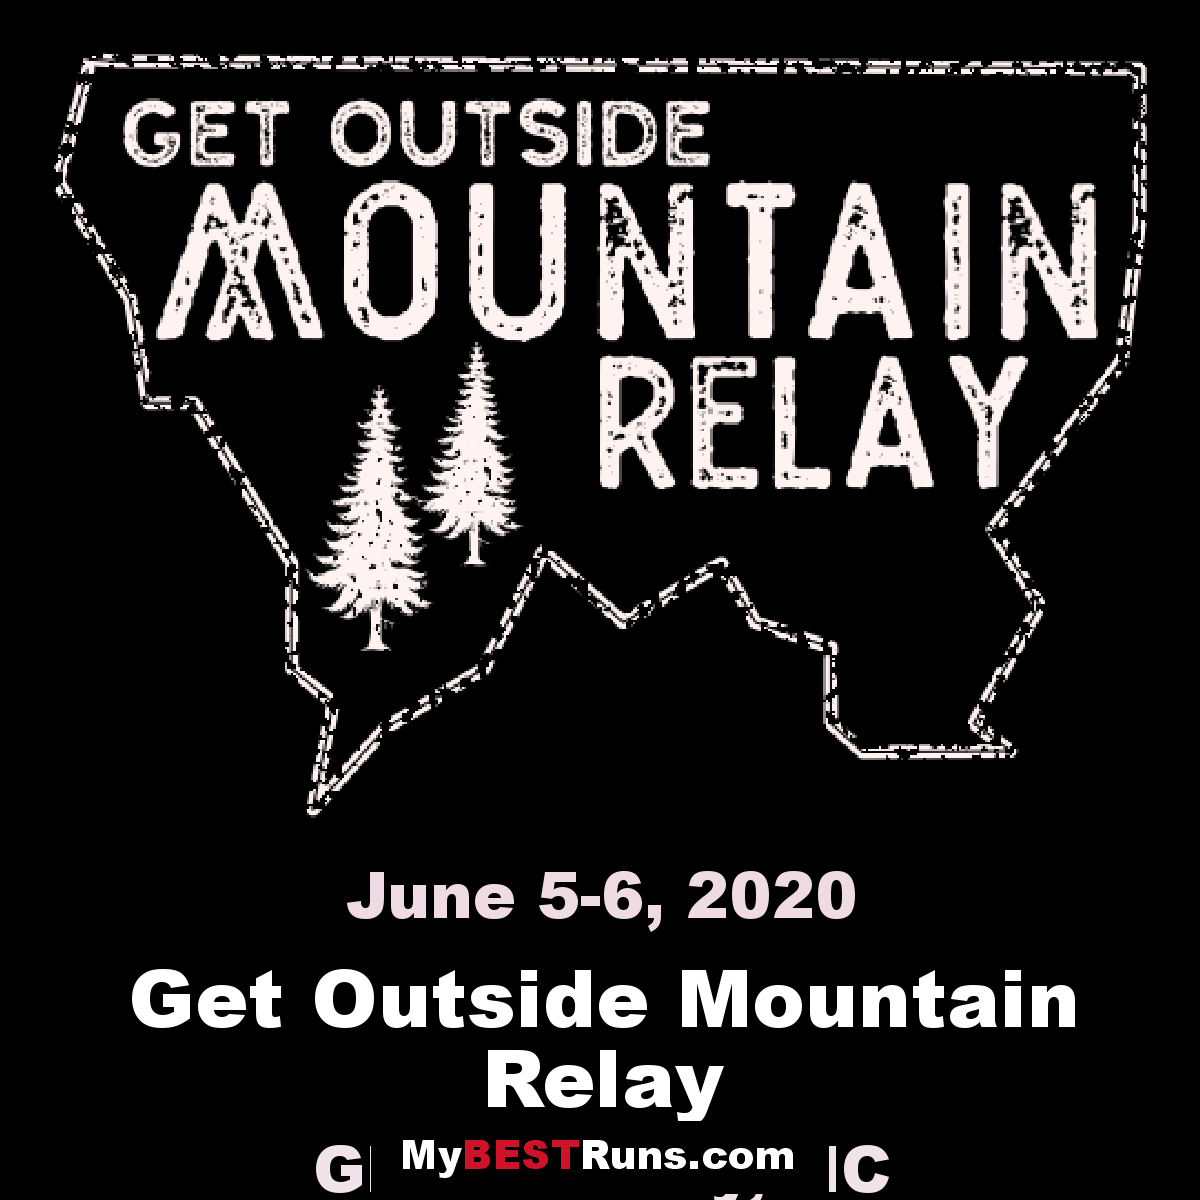 Get Outside Mountain Relay